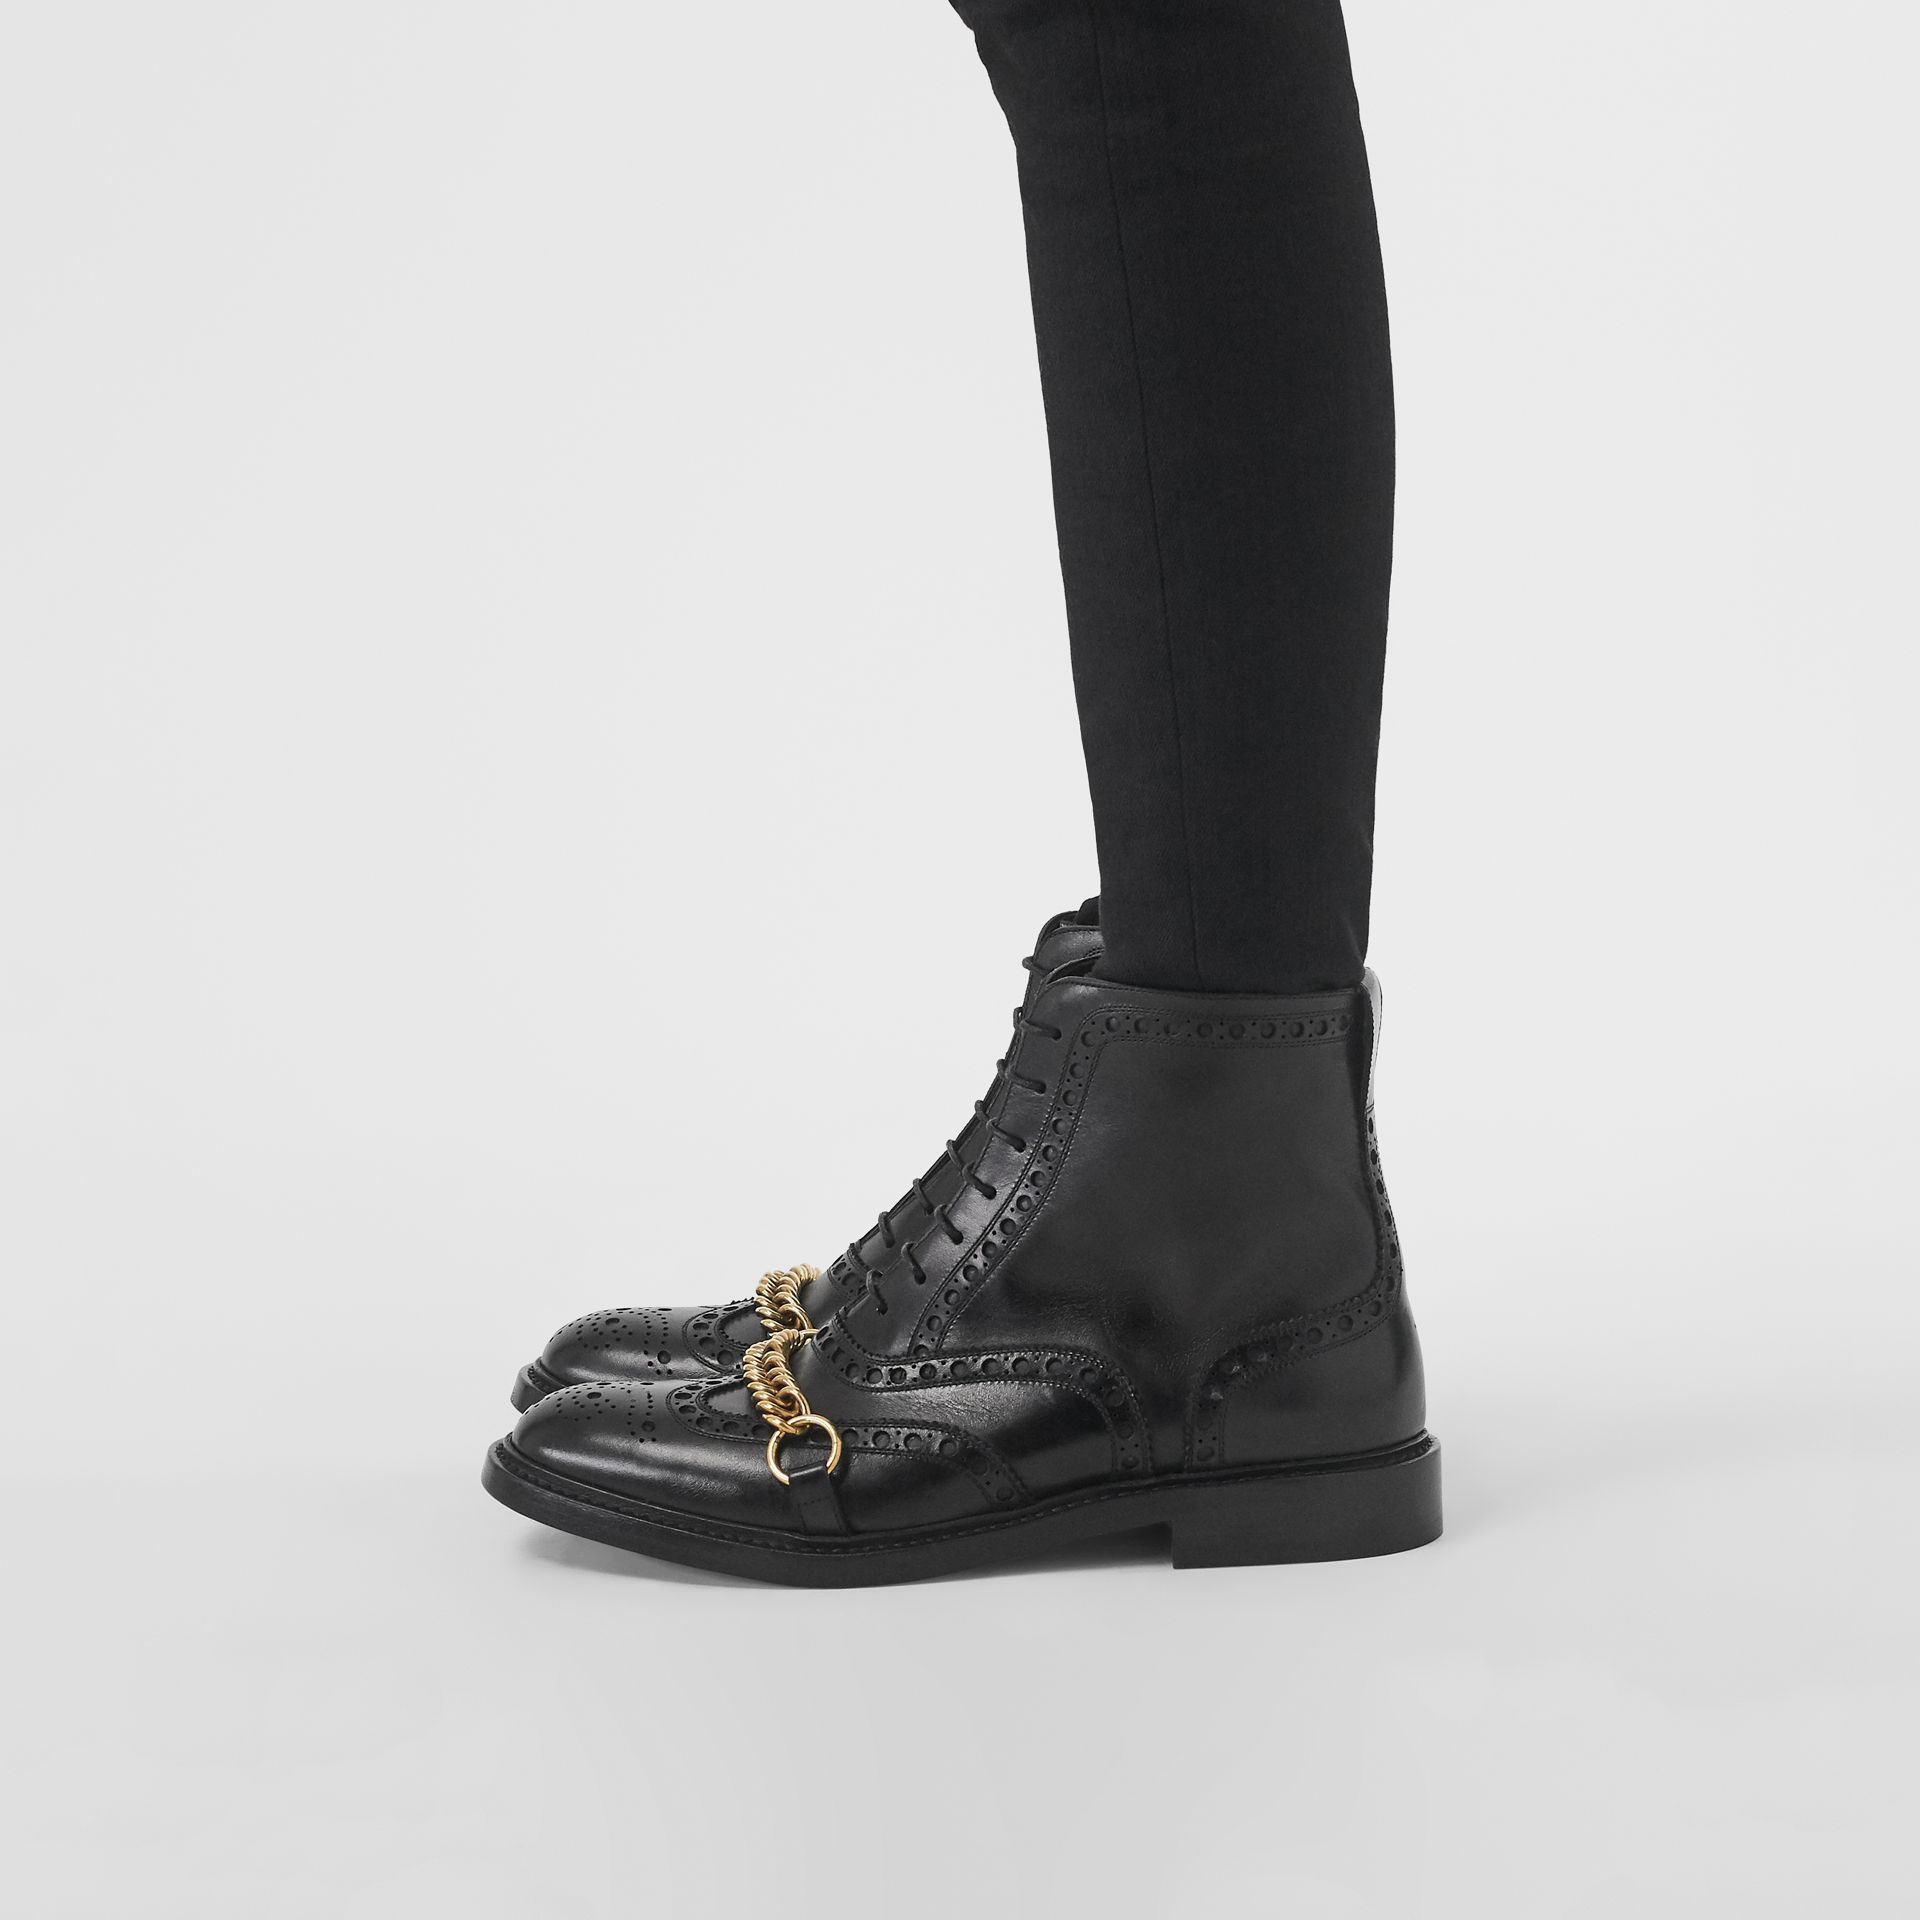 Link and Brogue Detail Leather Boots in Black - Women | Burberry - gallery image 2